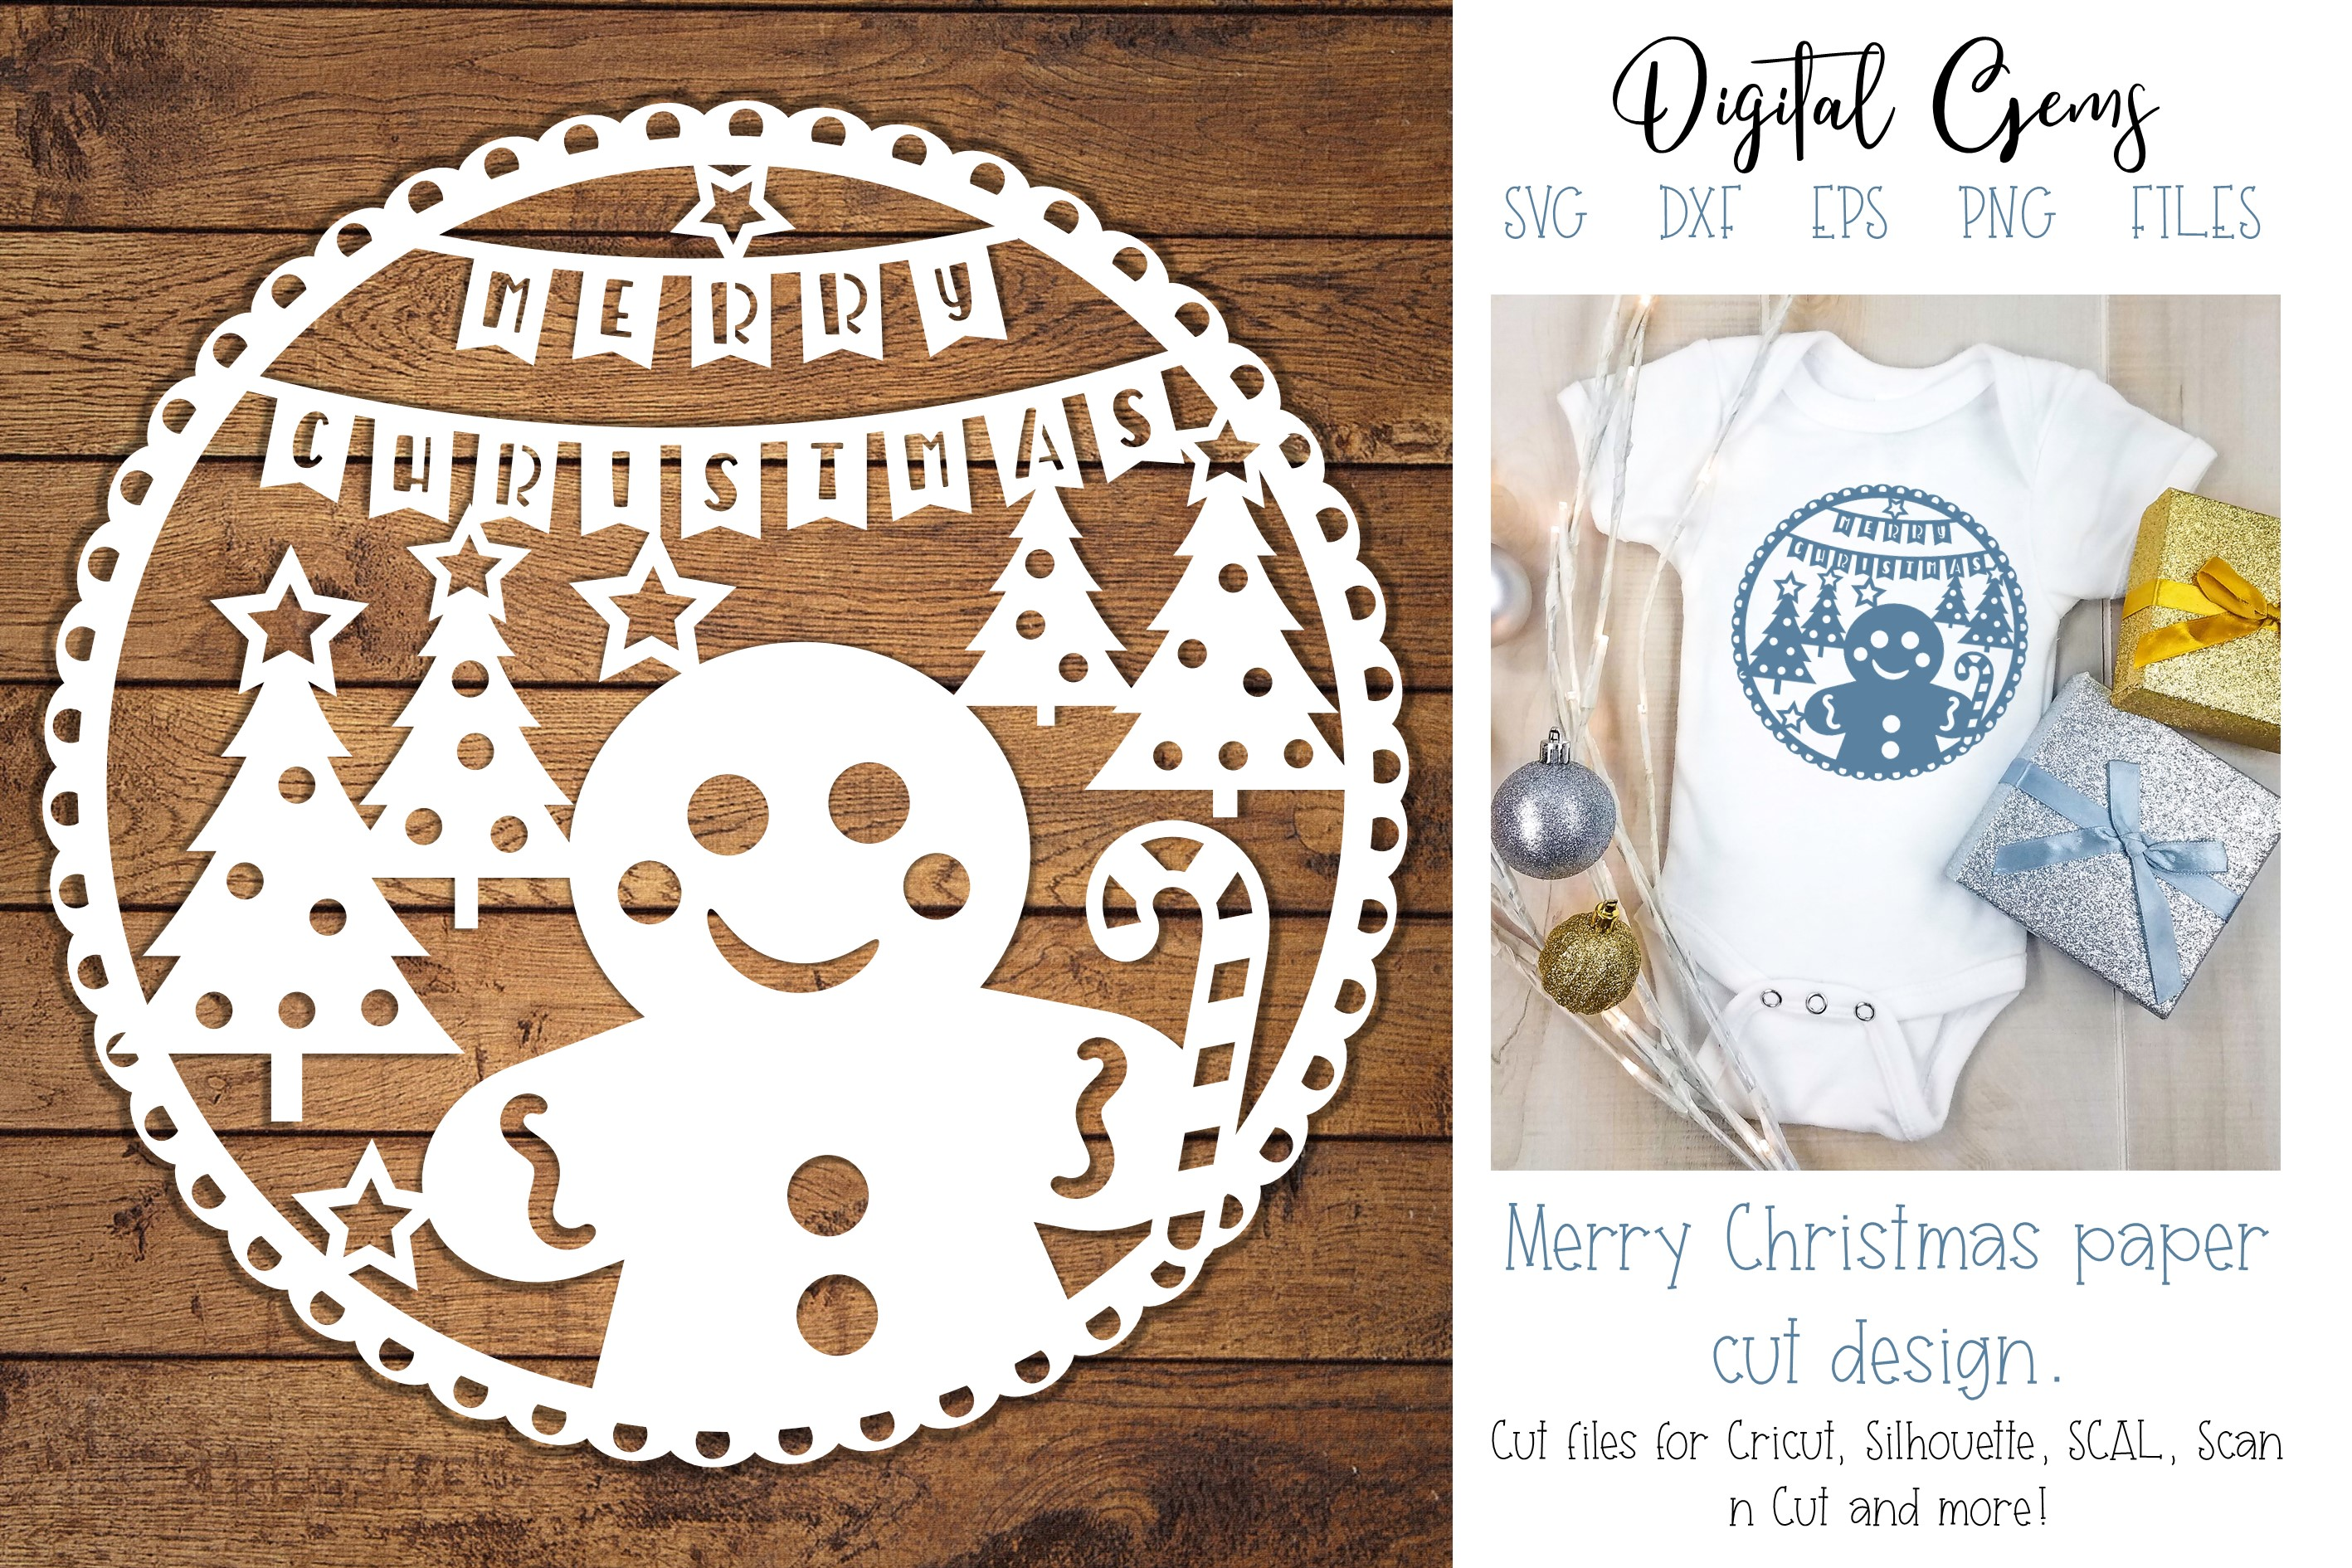 Download Free Gingerbread Man Christmas Design Graphic By Digital Gems for Cricut Explore, Silhouette and other cutting machines.